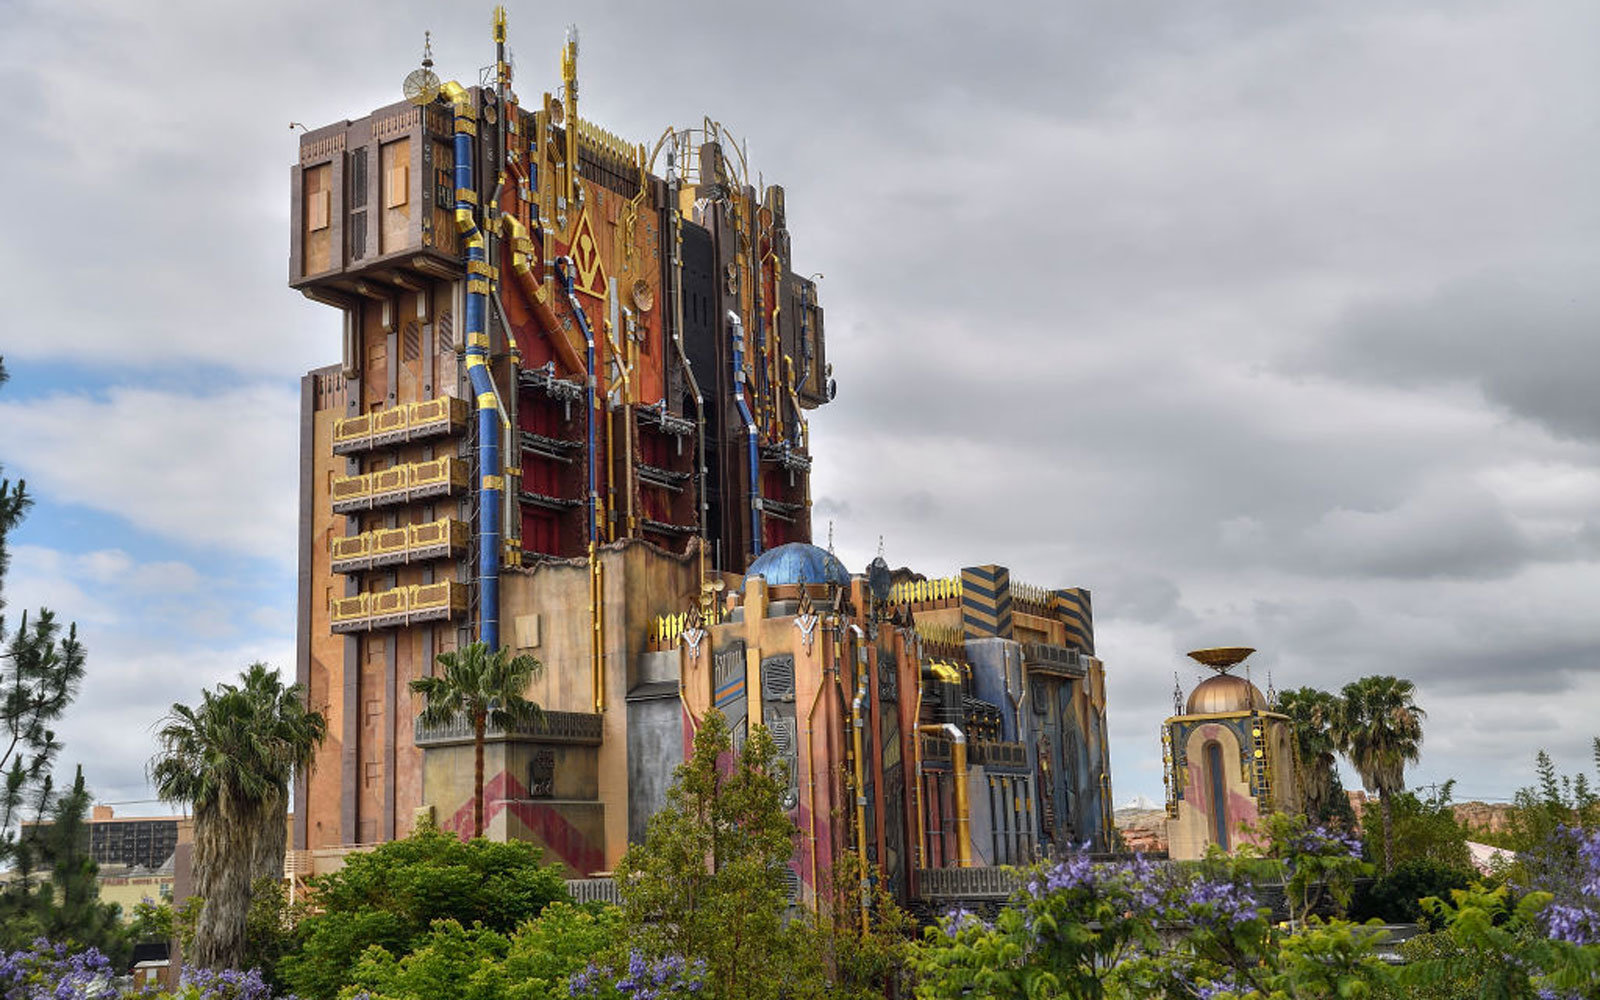 Disneyland Secures Permits for the Next Expansion: Marvel Land